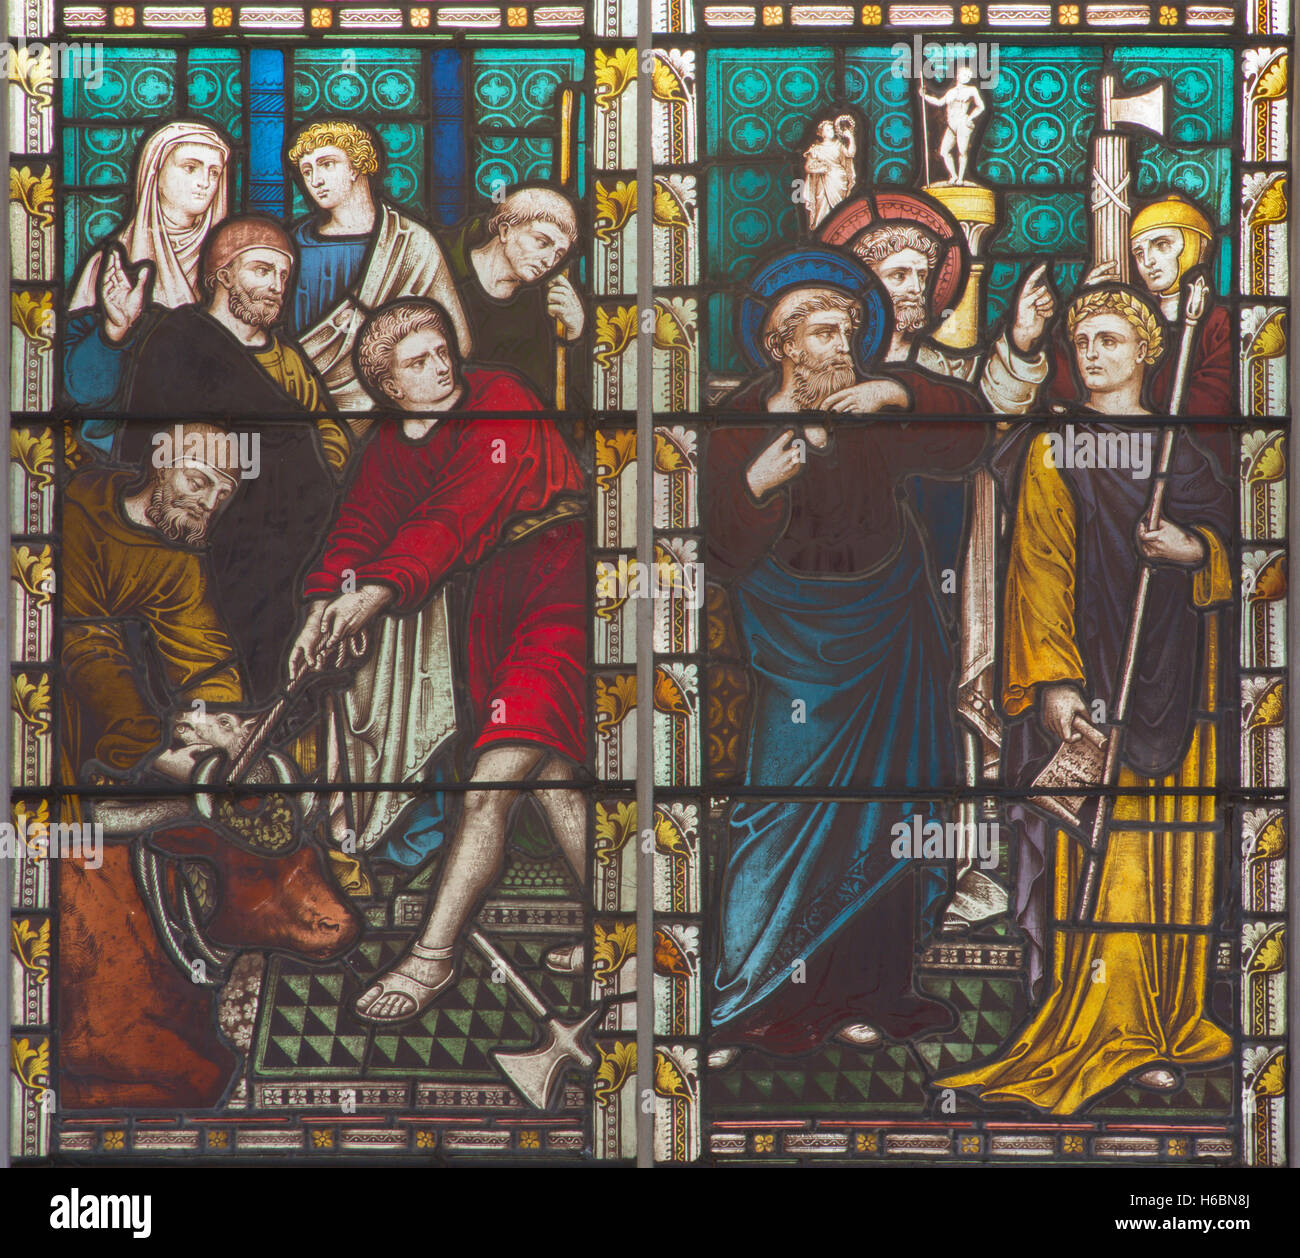 ROME, ITALY - MARCH 9. 2016: The scene St. Paul against the pagan offertory of animals on the stained glass - Stock Image